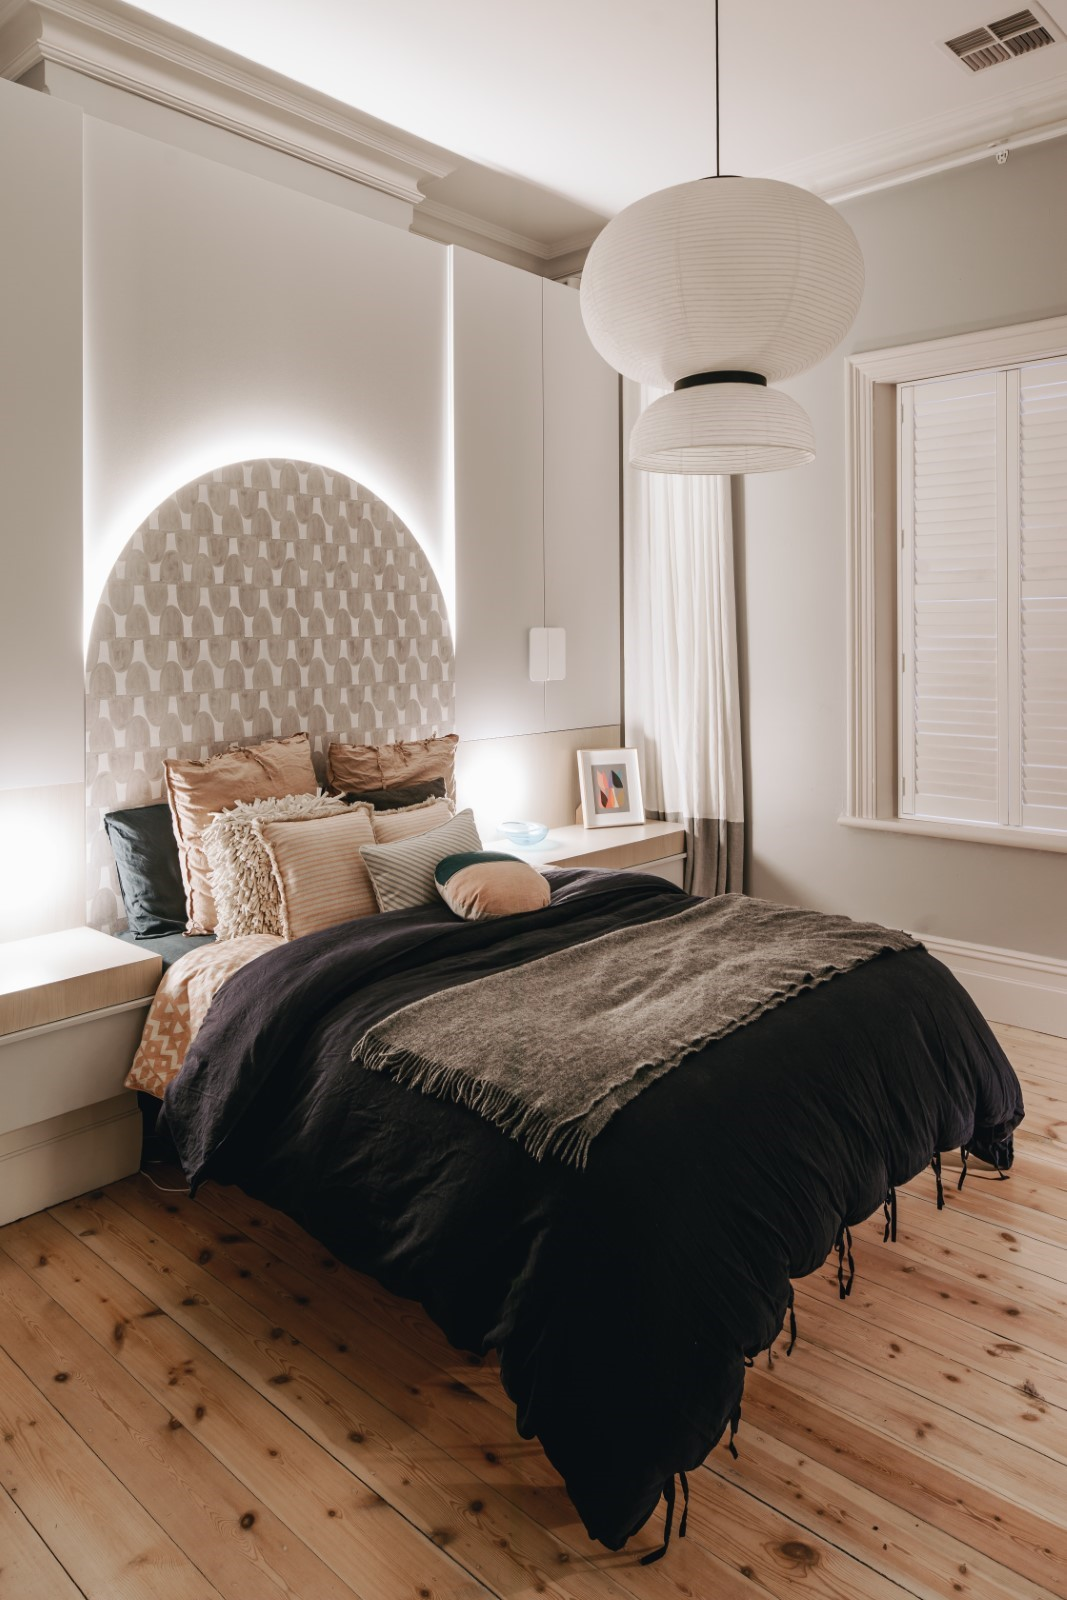 A picture containing indoor, floor, bed, wall  Description automatically generated